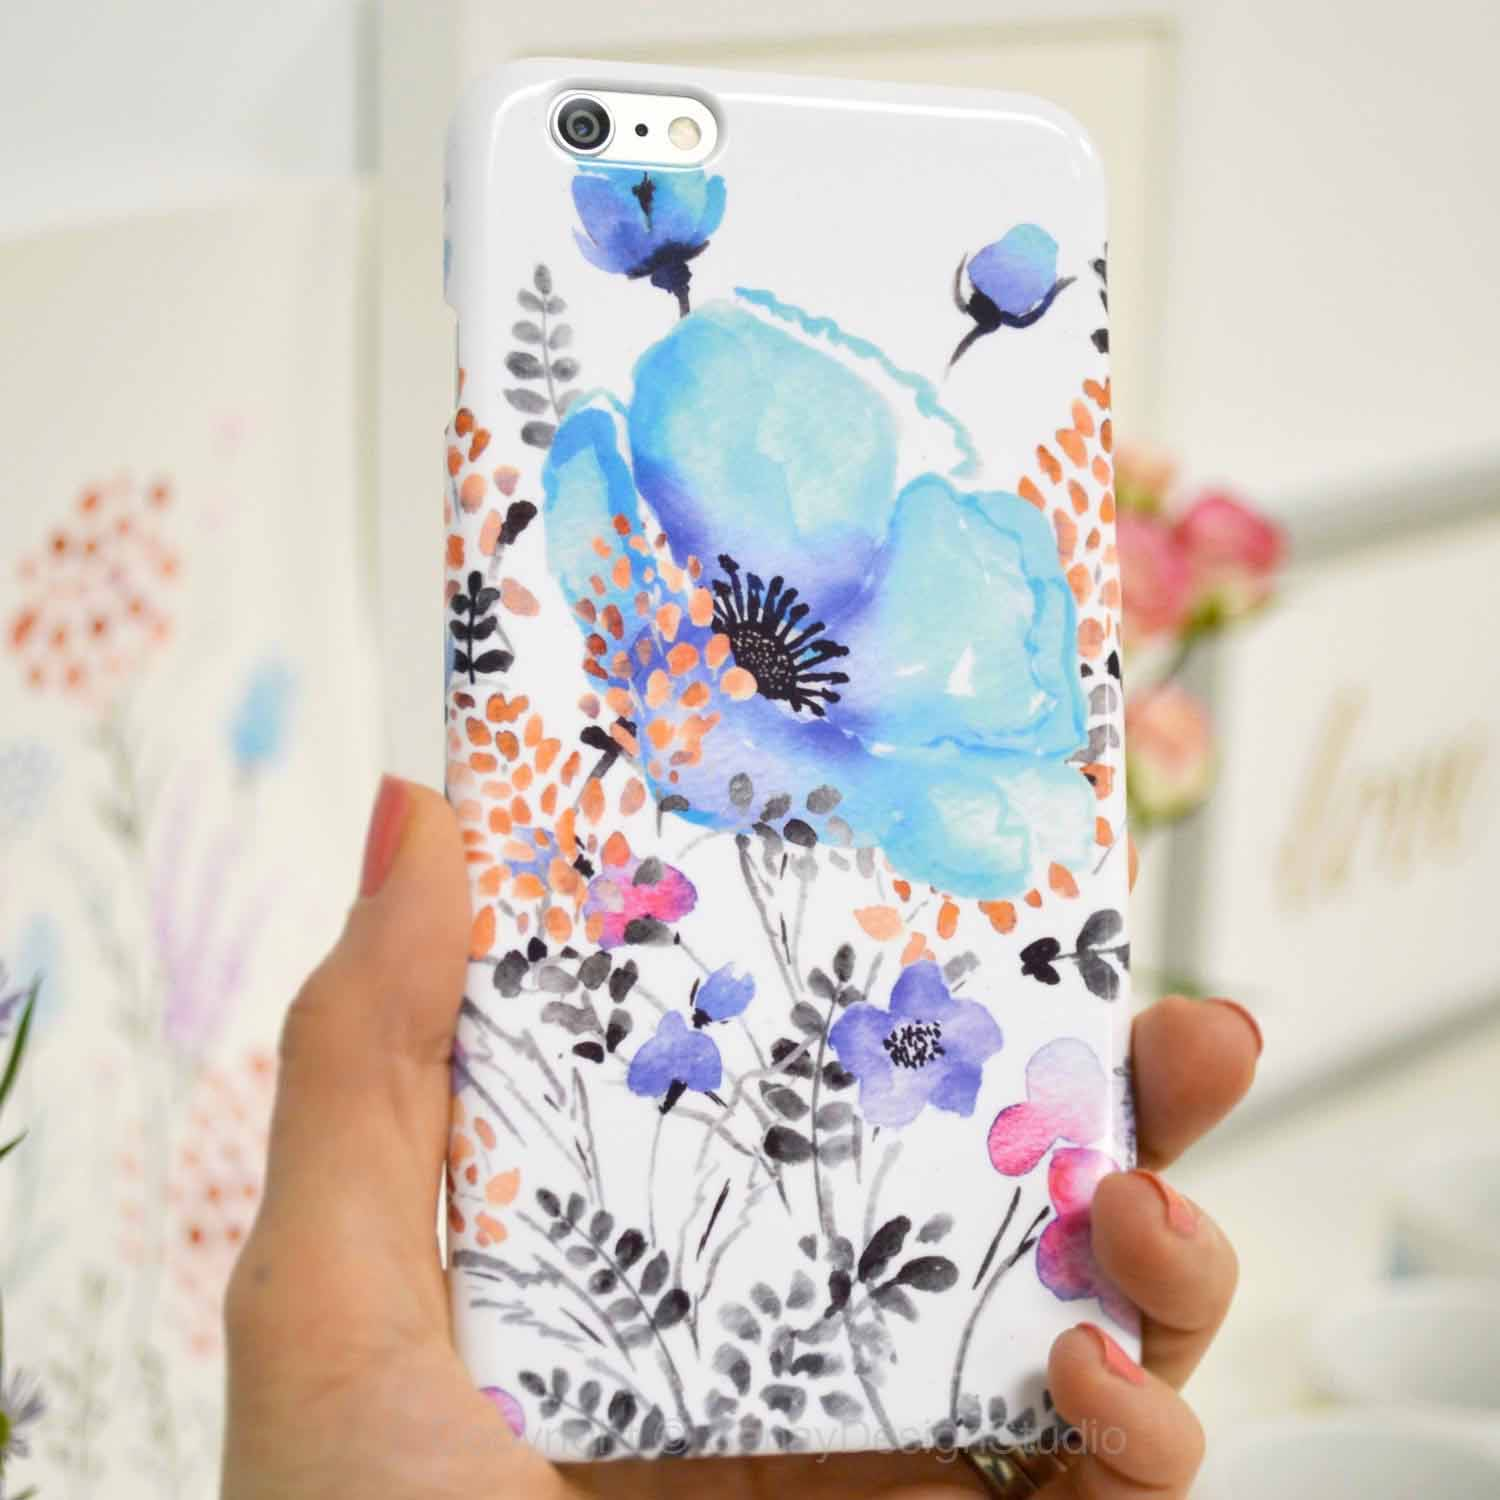 Along with a phone case, you can also give a designer back cover to ...